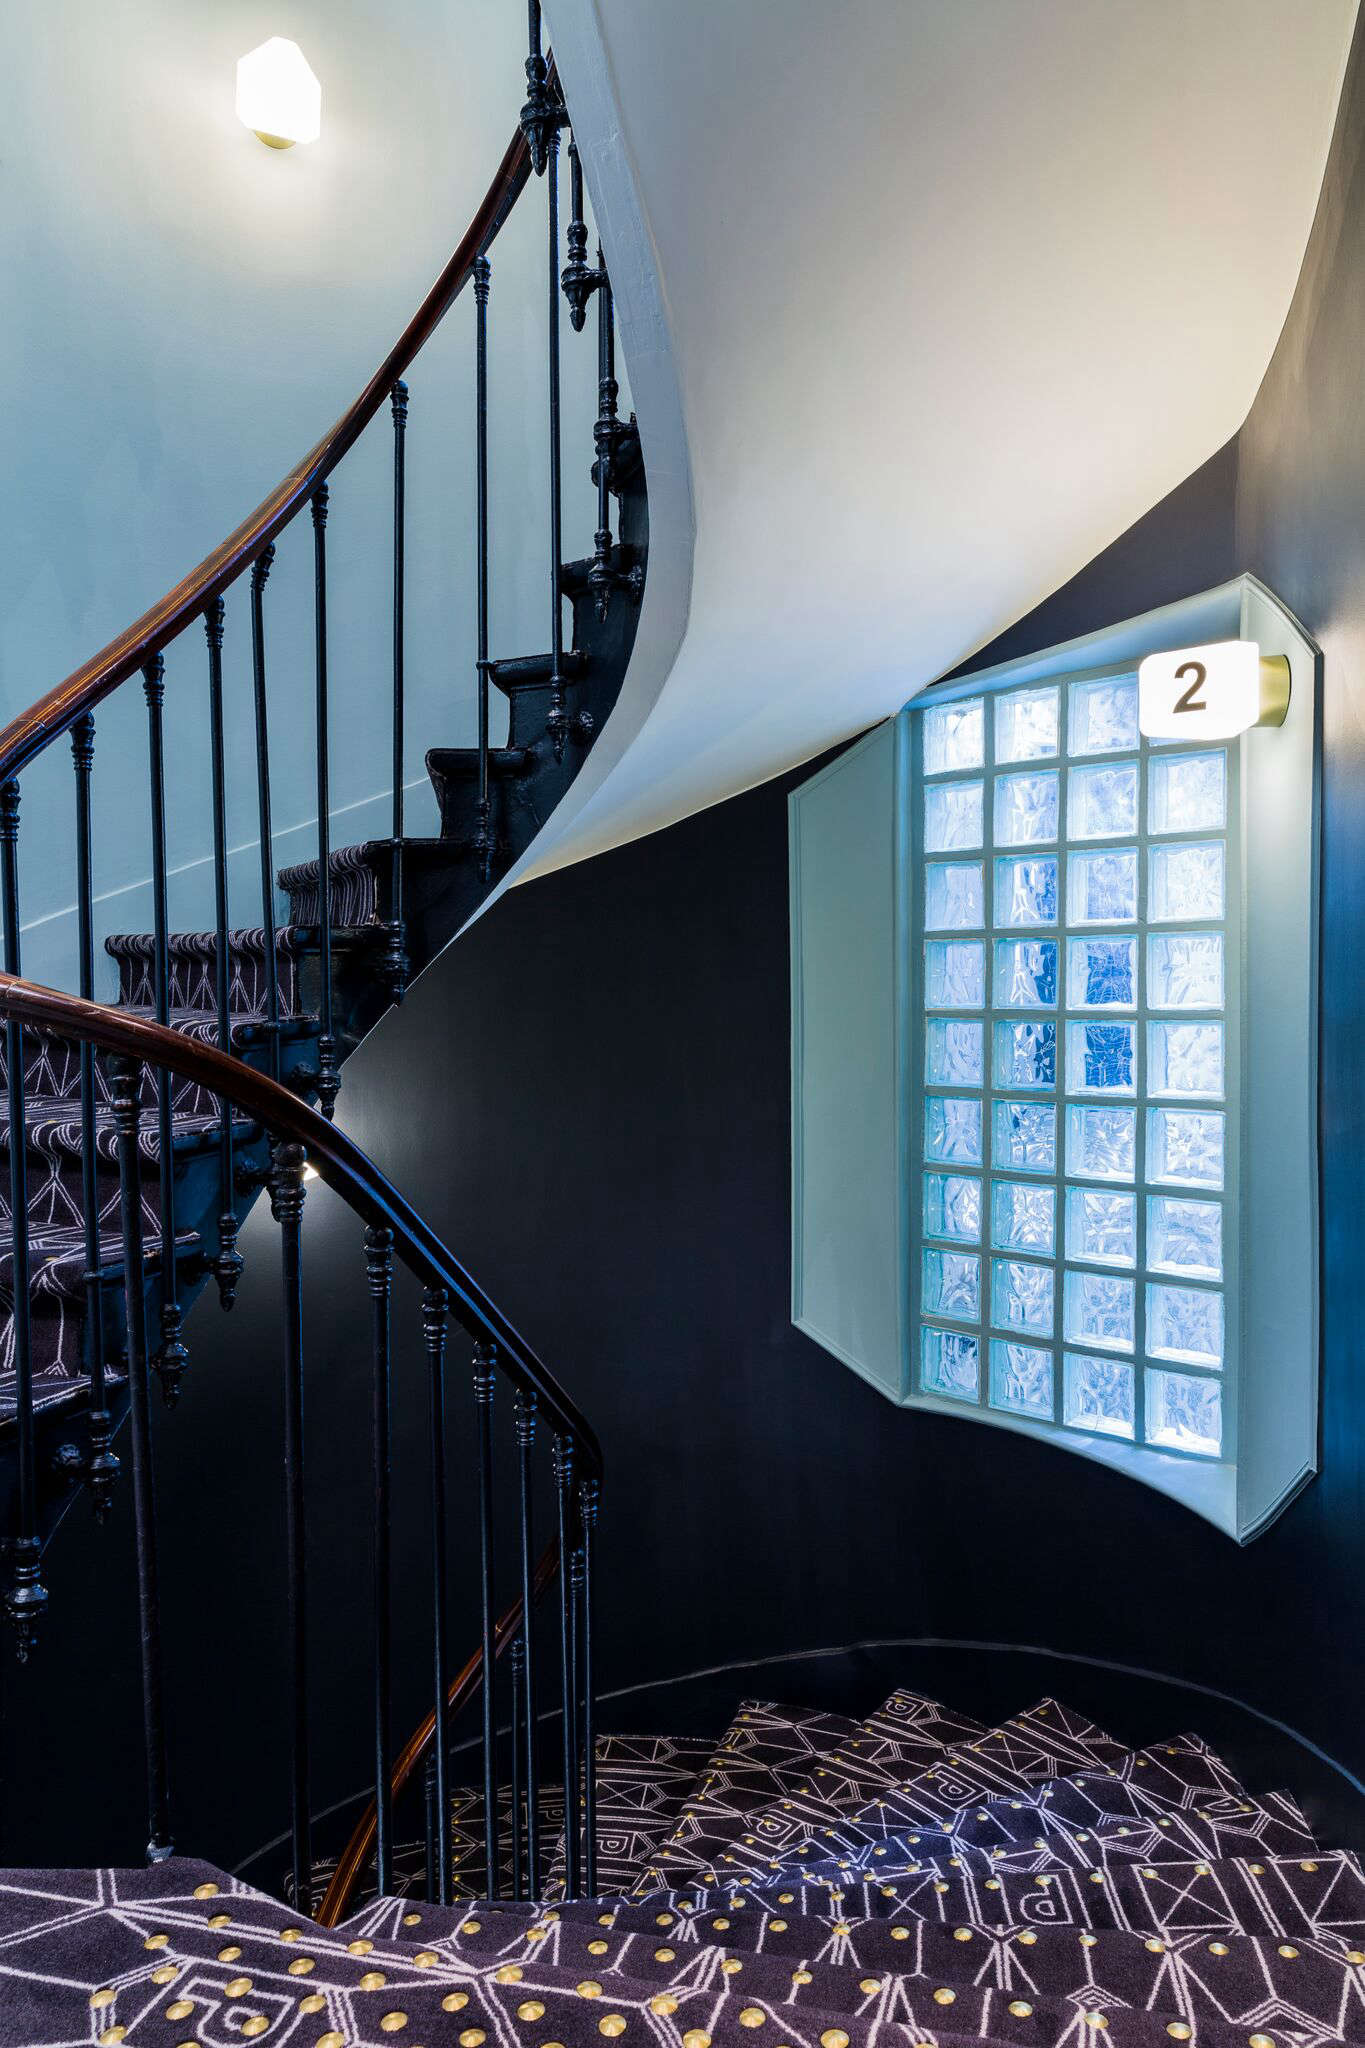 The hotel has seven floors. The winding stair is carpeted in a custom pattern inspired by old coats of arms.